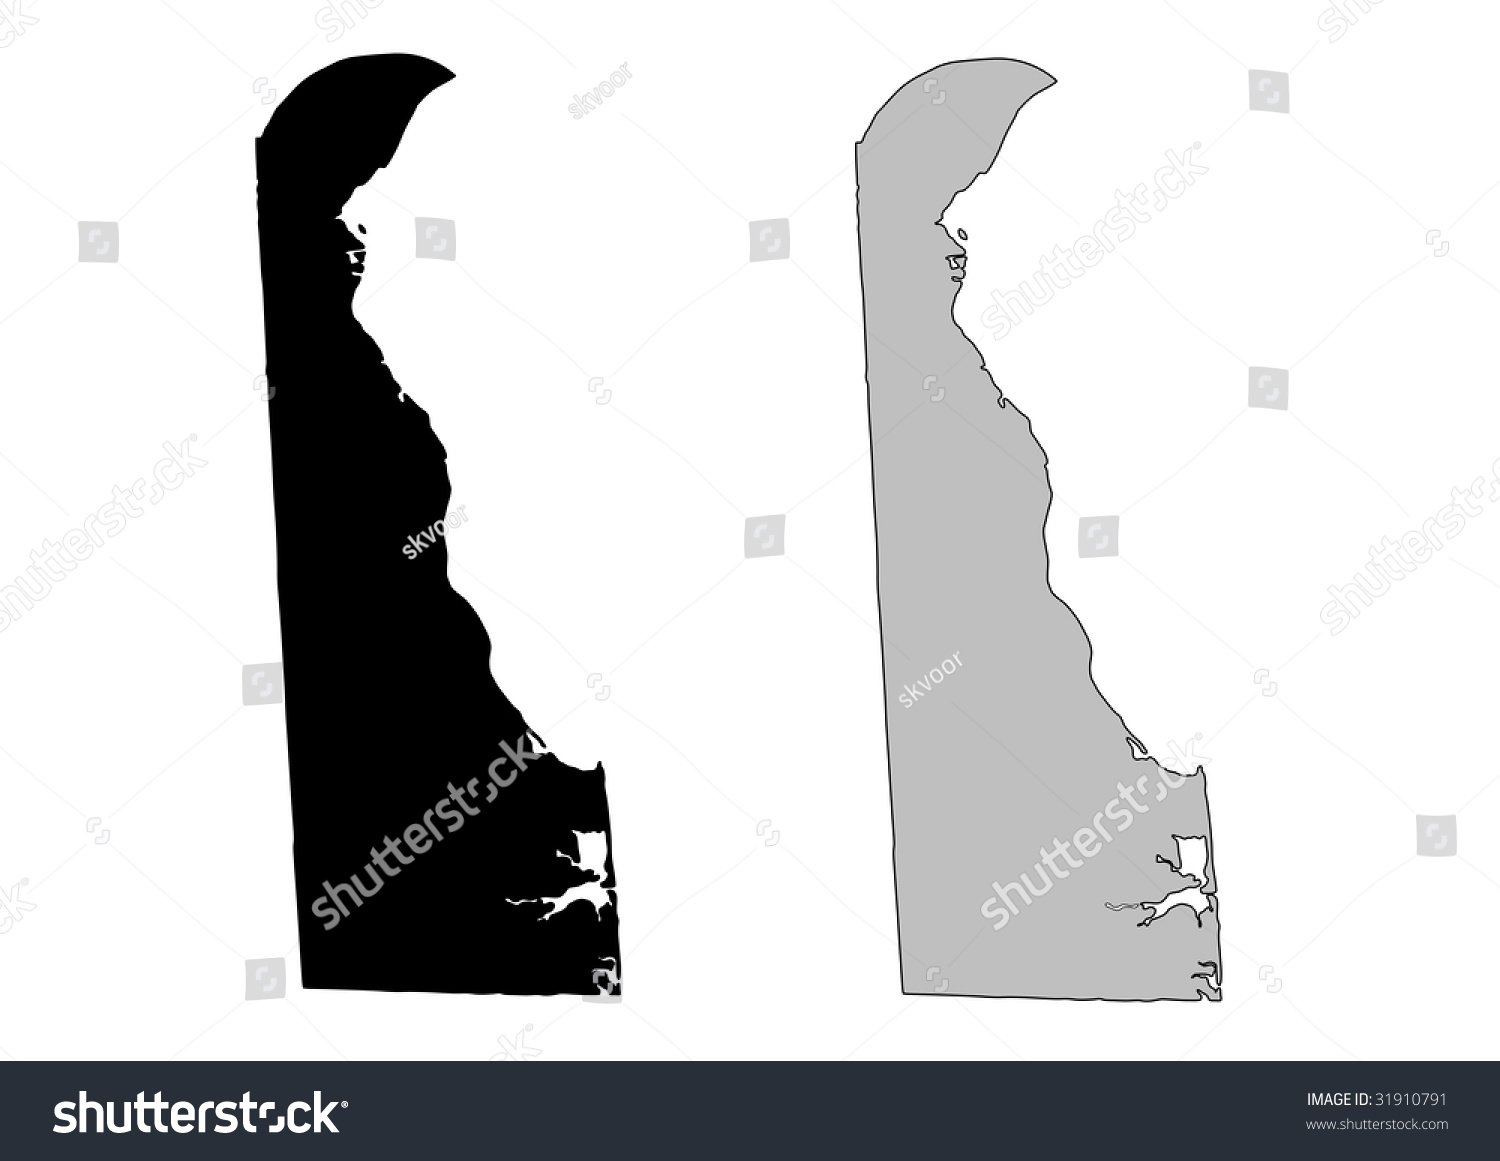 Delaware Map. Black And White. Mercator Projection. Stock ...Black And White Delaware Colony Map